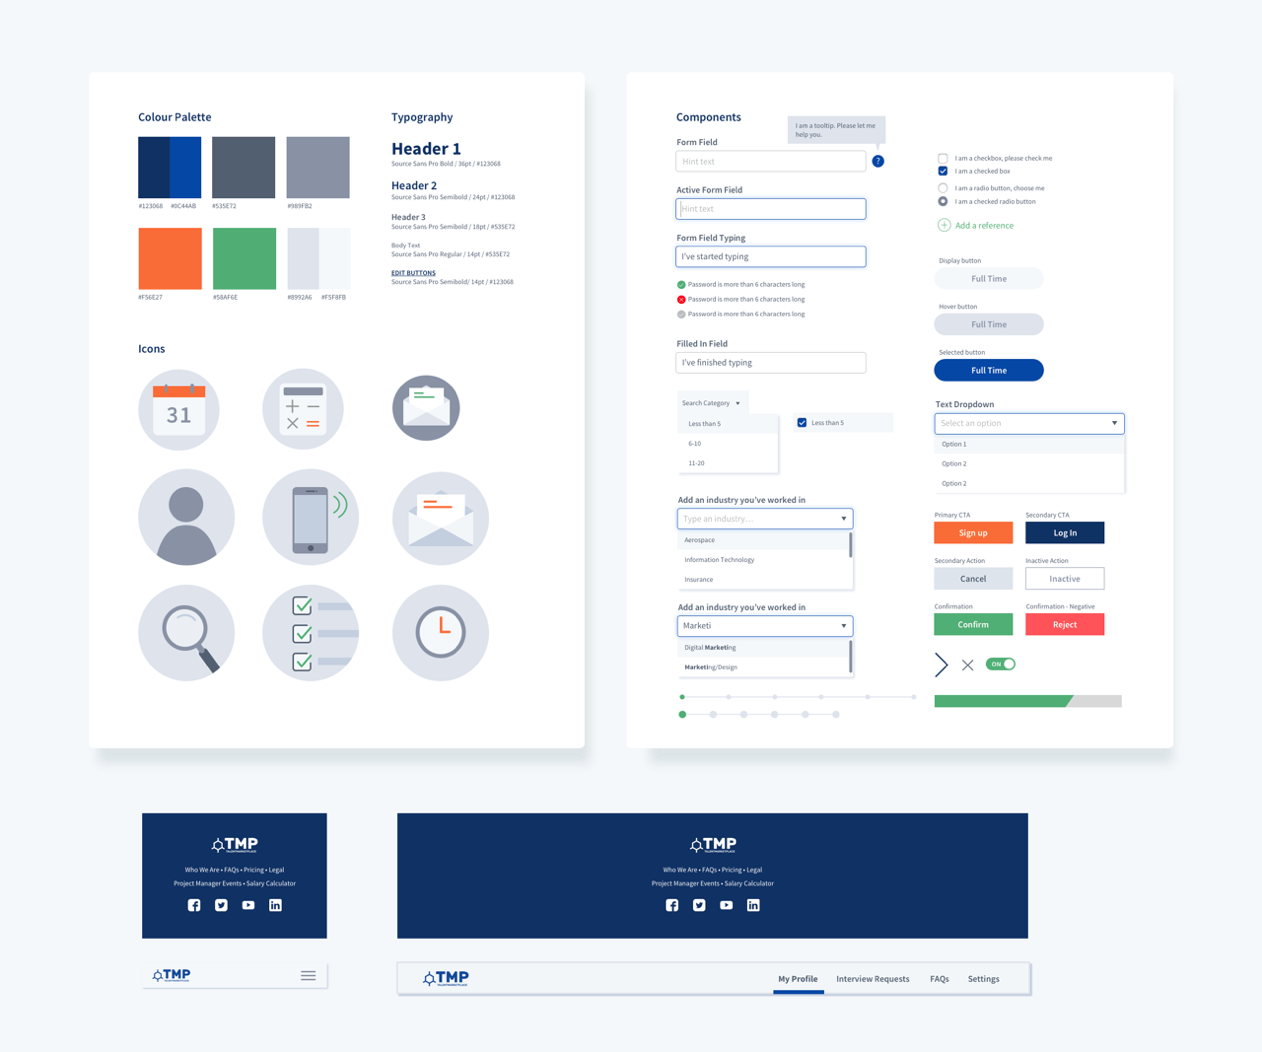 case study ux optimisation for talentmarketplace prototypr in addition we created a few custom icons to better illustrate some key concepts on the home page